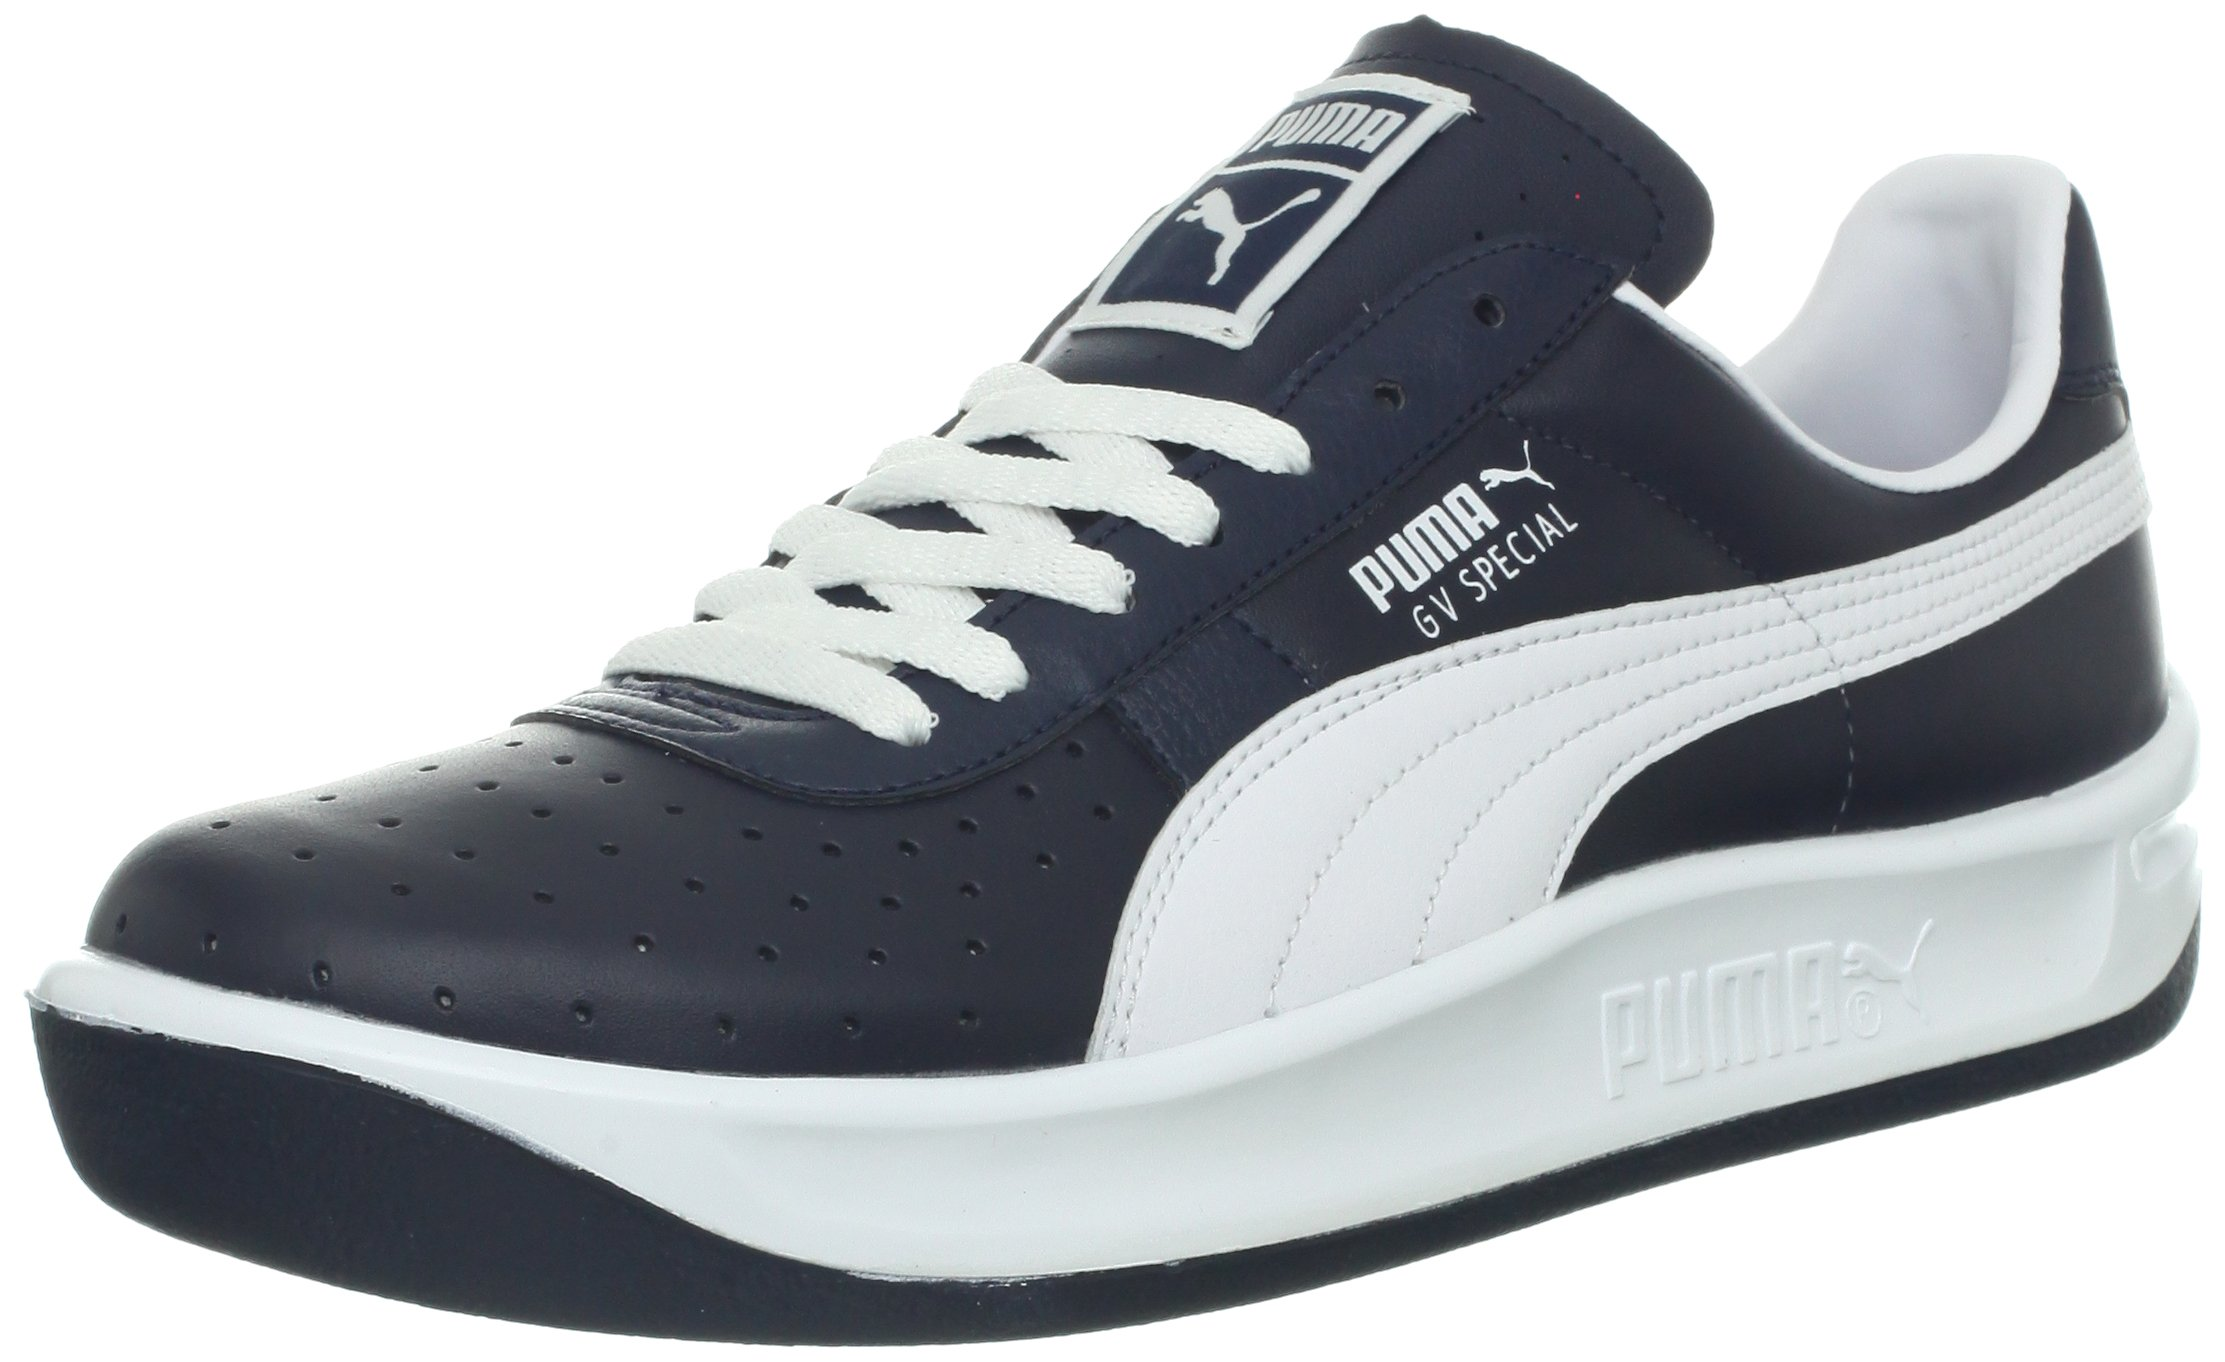 new product 52a62 3164d PUMA Men's GV Special Fashion Sneaker,New Navy/White,8 D US